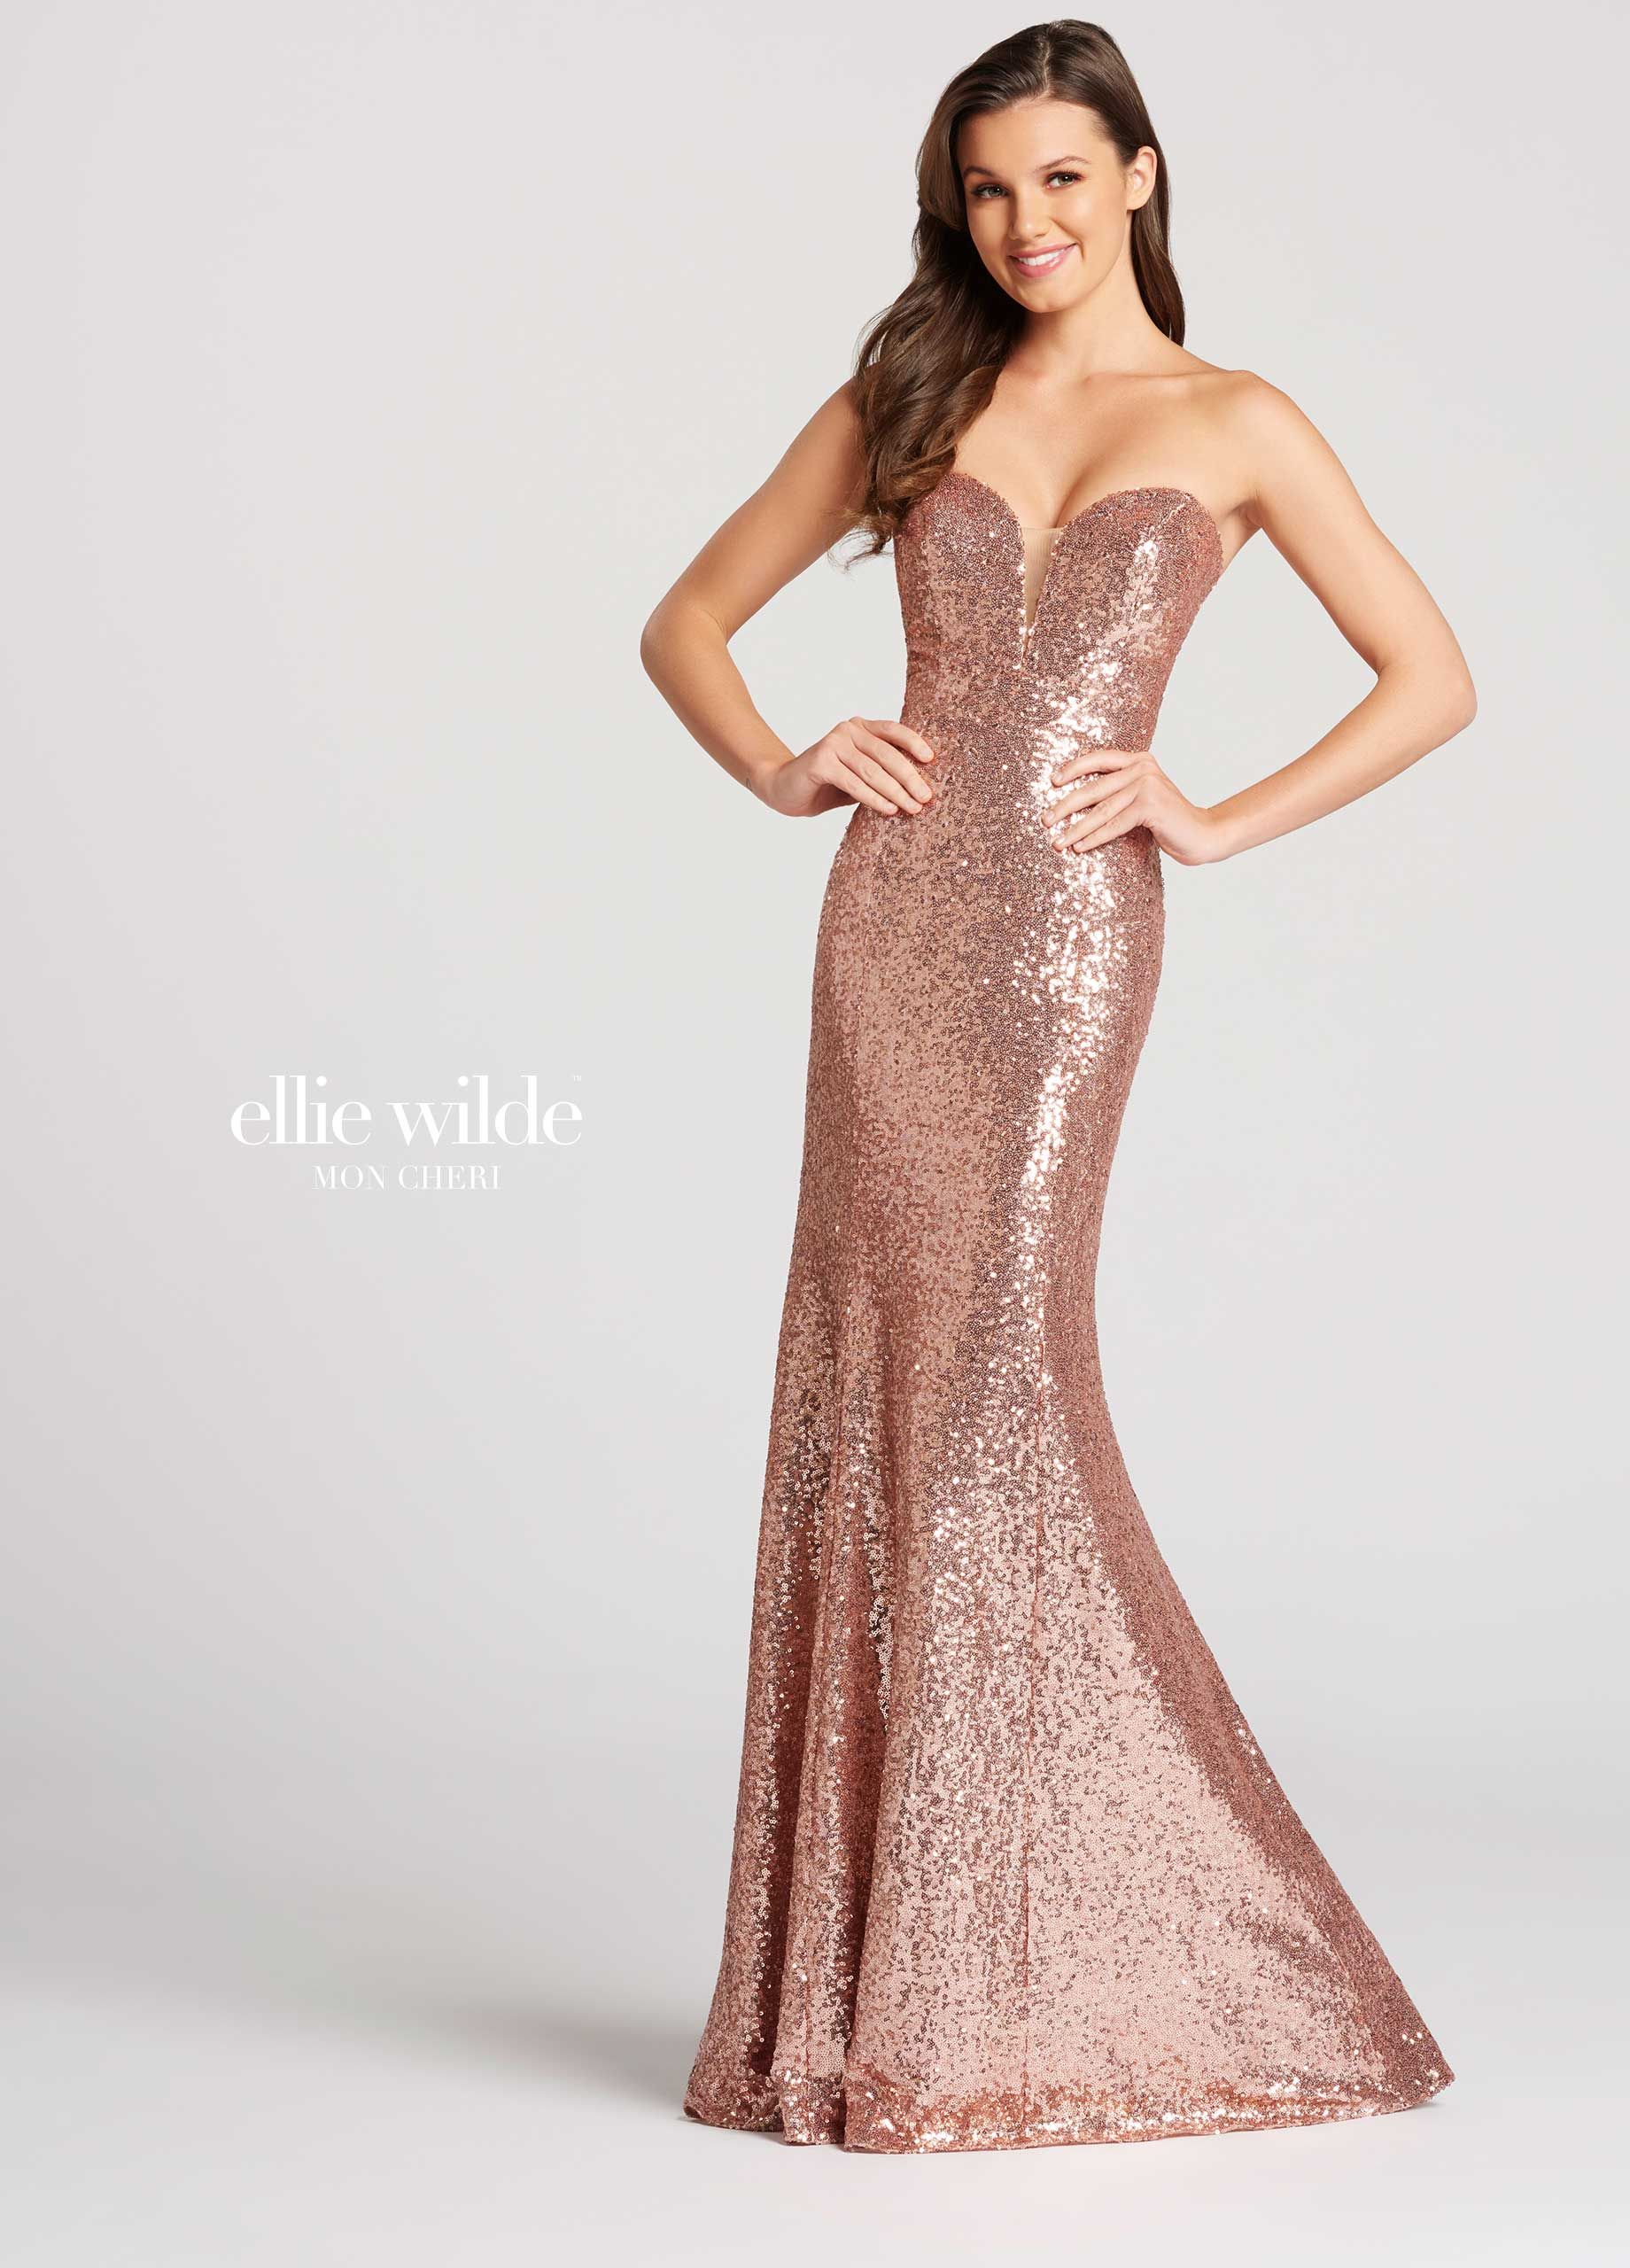 Ellie Wilde Ew117033 Strapless Sequin Fit And Flare Gown Deep Plunging Sweetheart Neckline With Illusion Modesty Panel Slight Train